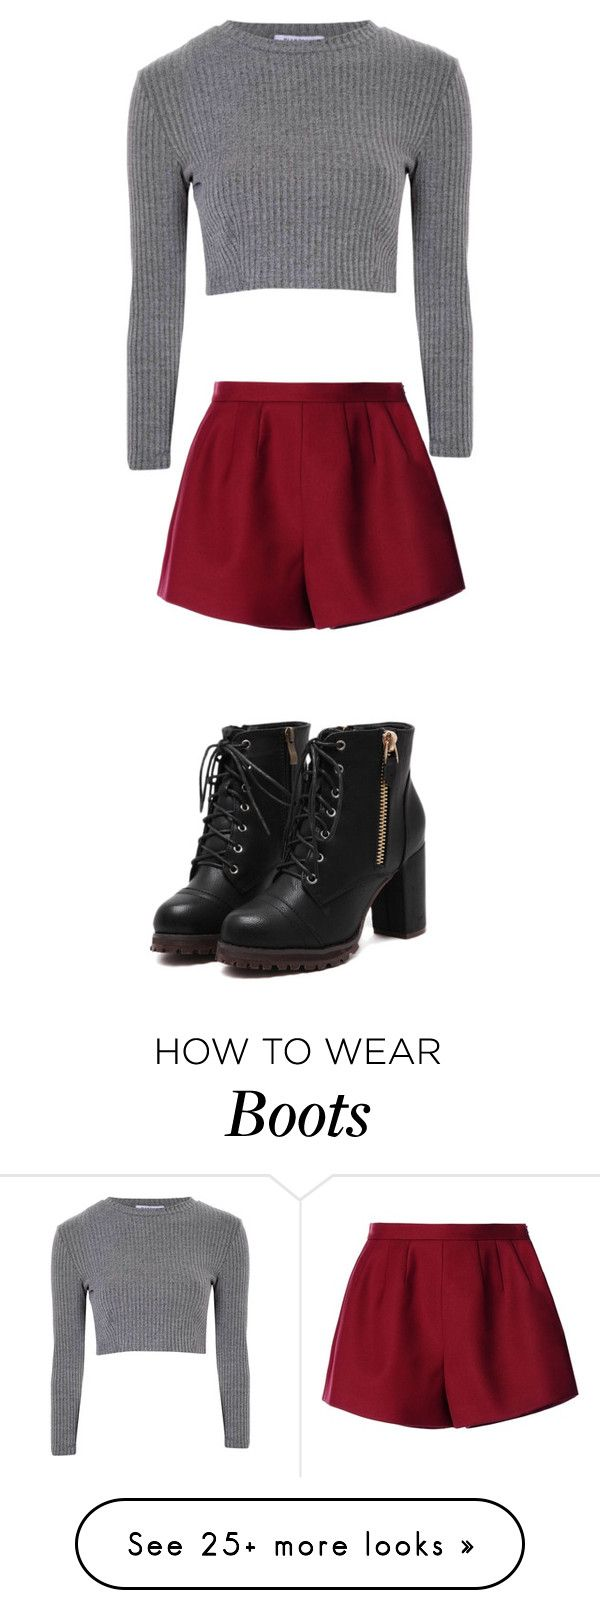 """Best boots"" by dolphinsrcool2014 on Polyvore featuring Mode, RED Valentino und Glamorous"